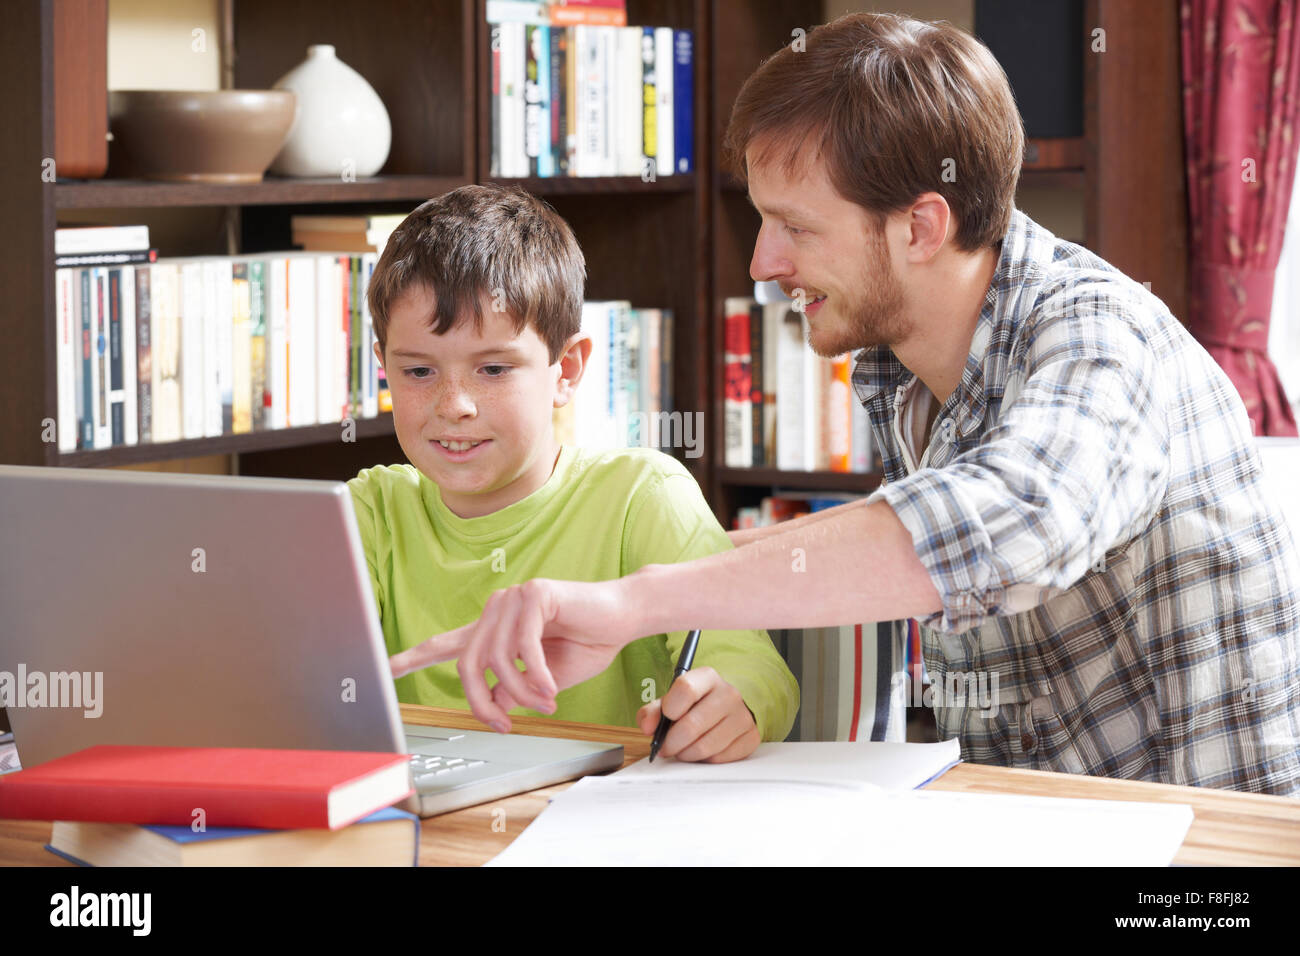 Boy Studying With Home Tutor - Stock Image